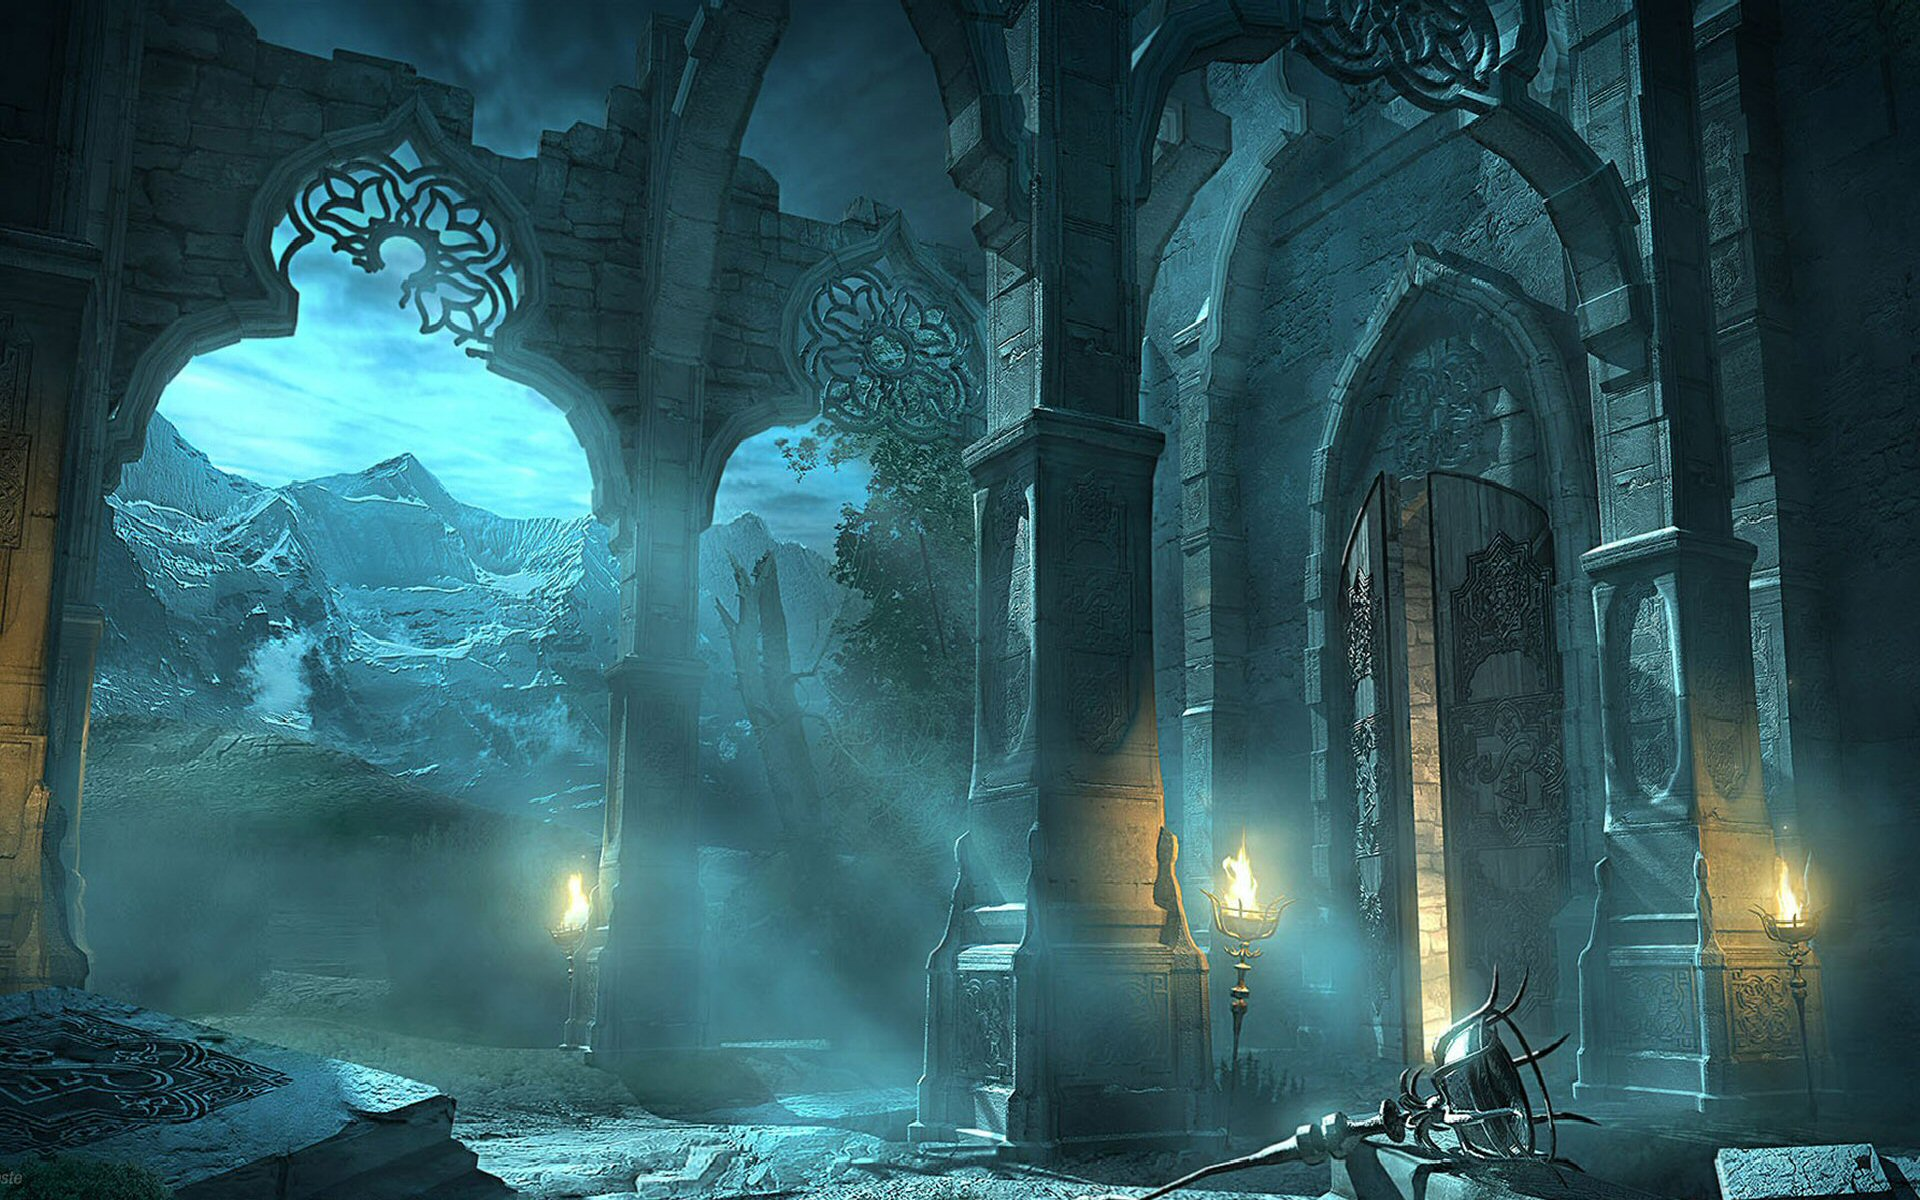 Prince Of Persia Hd Wallpaper Prince Of Persia Raphael Lacoste Wallpaper 1920x1200